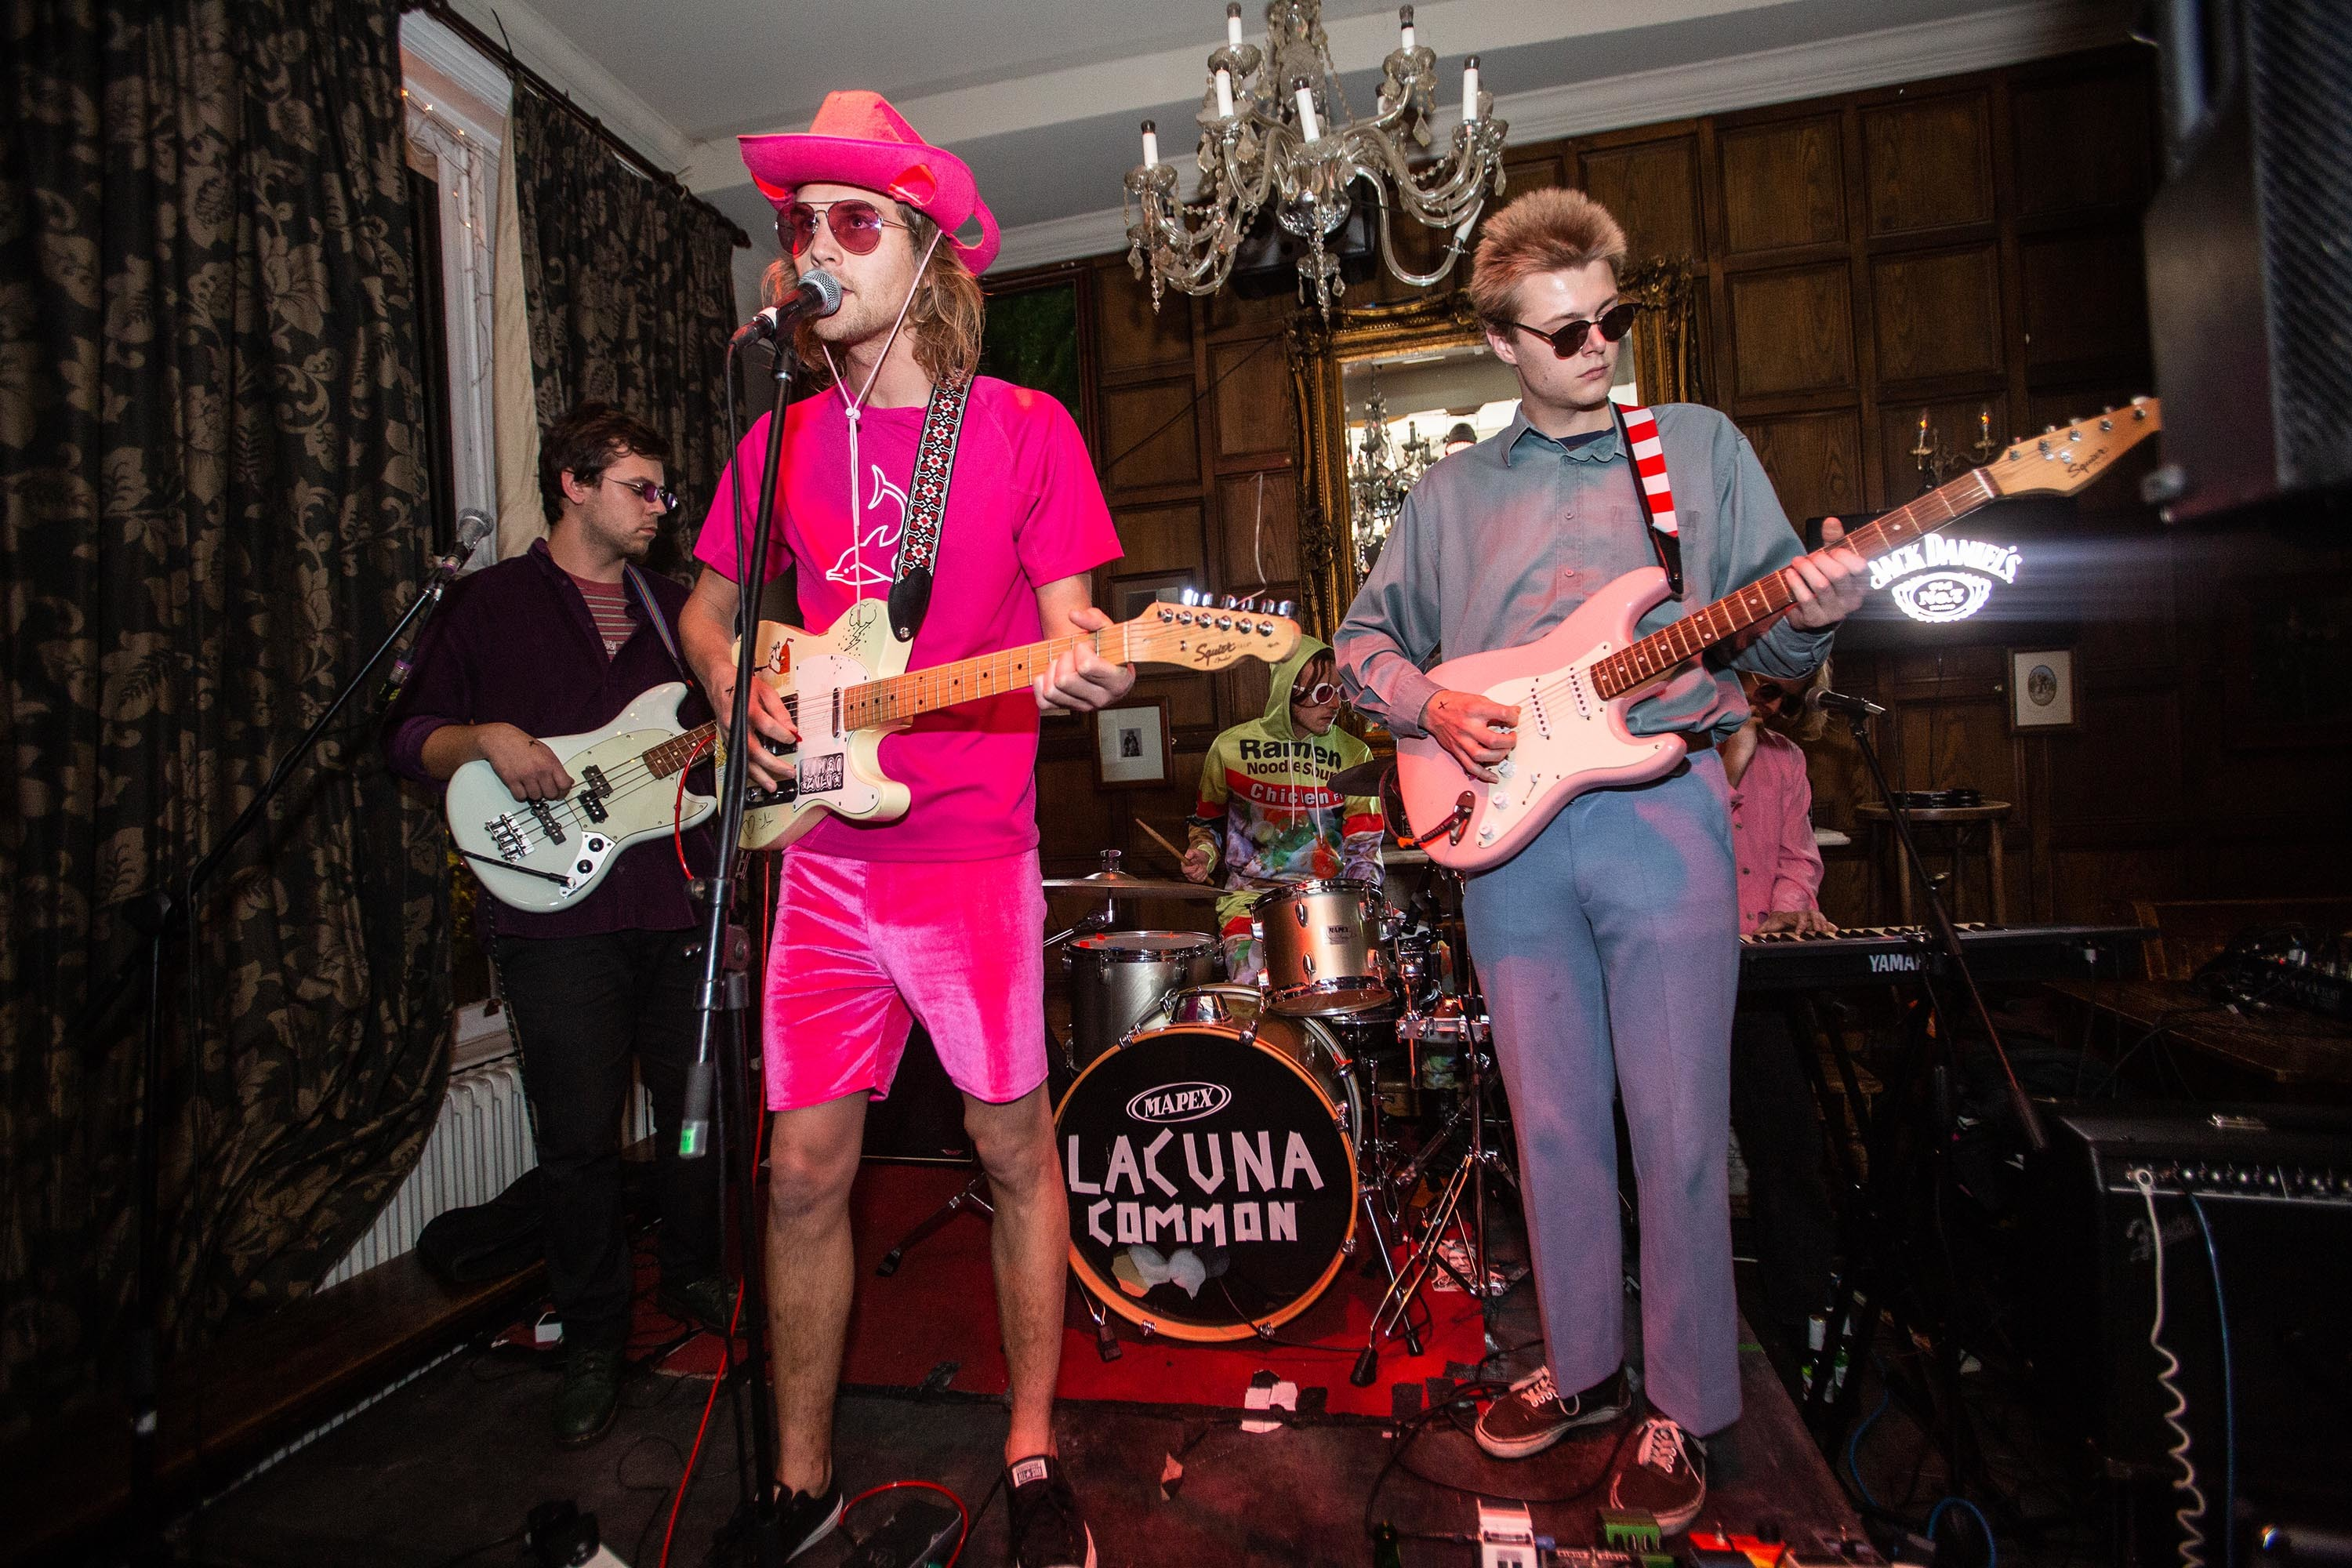 Lacuna Common, Crystal, Trudy and the Romance and Italia 90 deliver packed-out rooms on the DIY x Jack Daniel's Presents tour